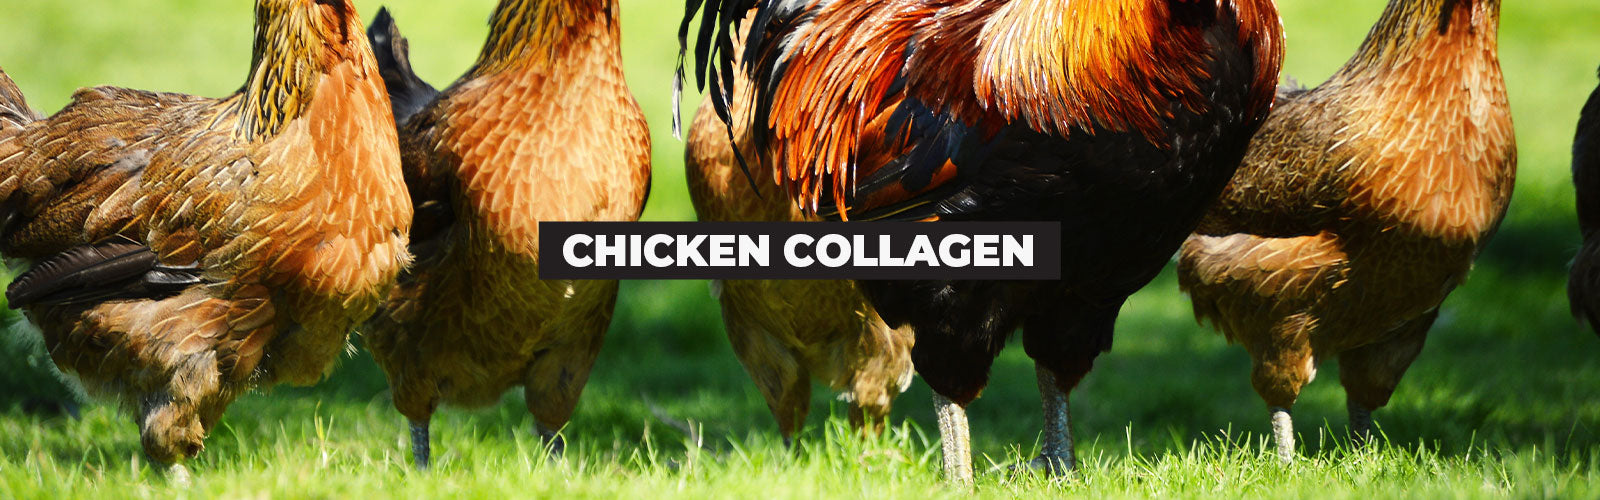 Chicken Collagen: Reinforce Joint Strength with This Valuable Protein